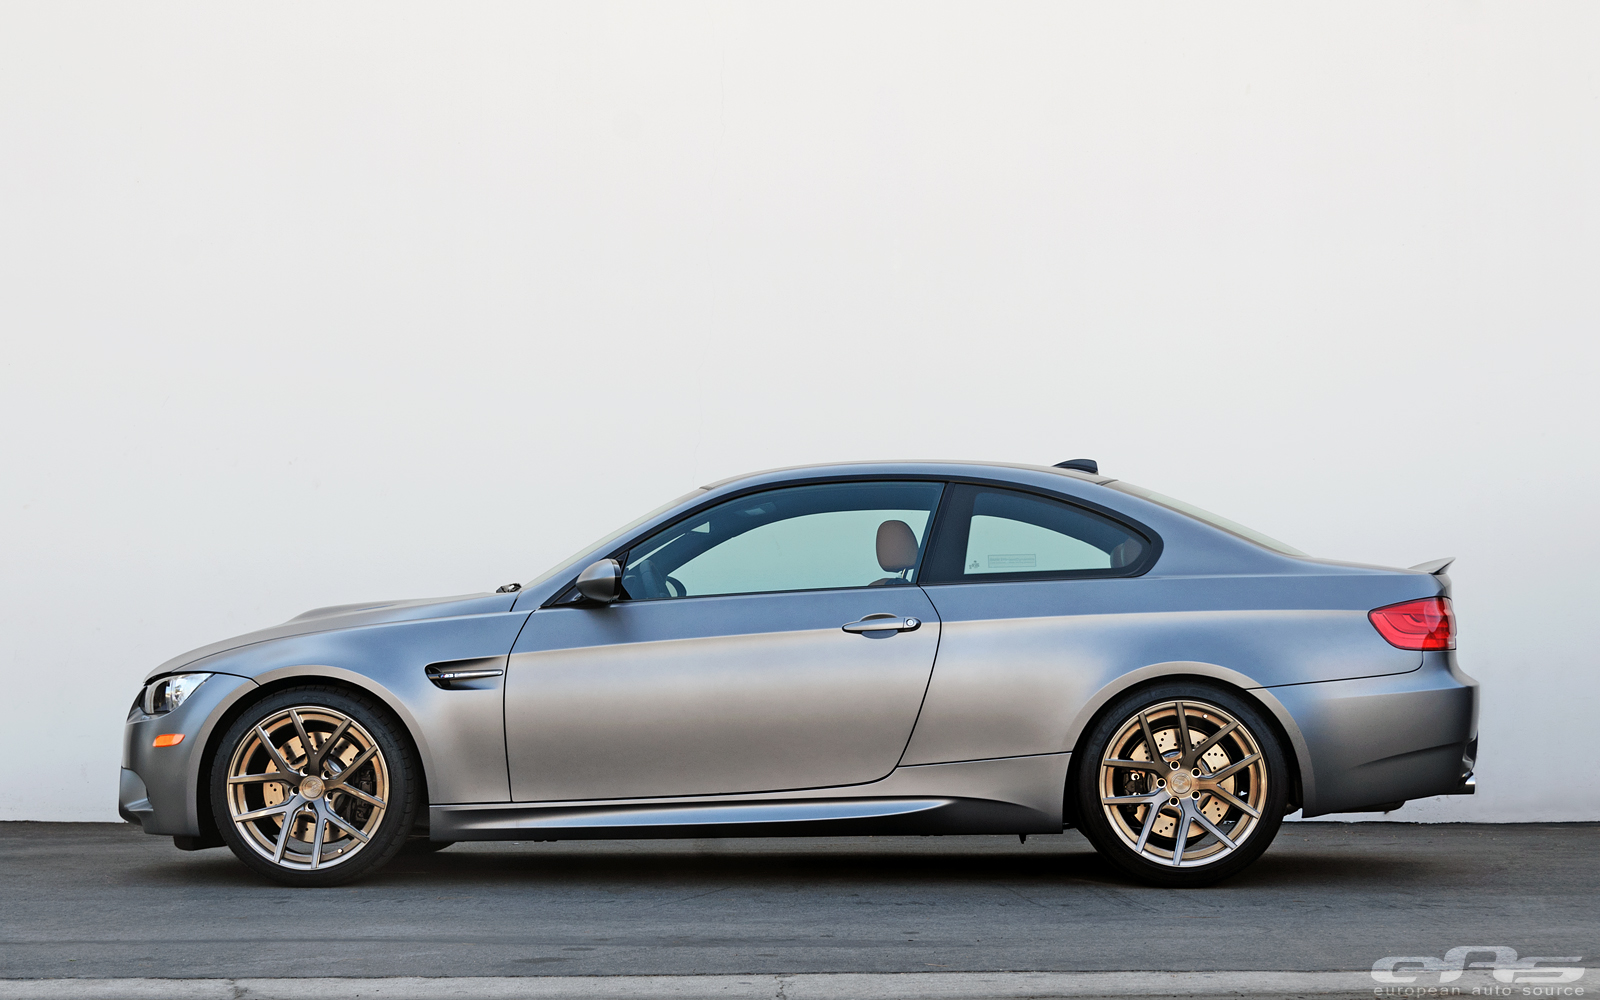 Frozen Silver Bmw E92 M3 With Rust Brown Leather Looks